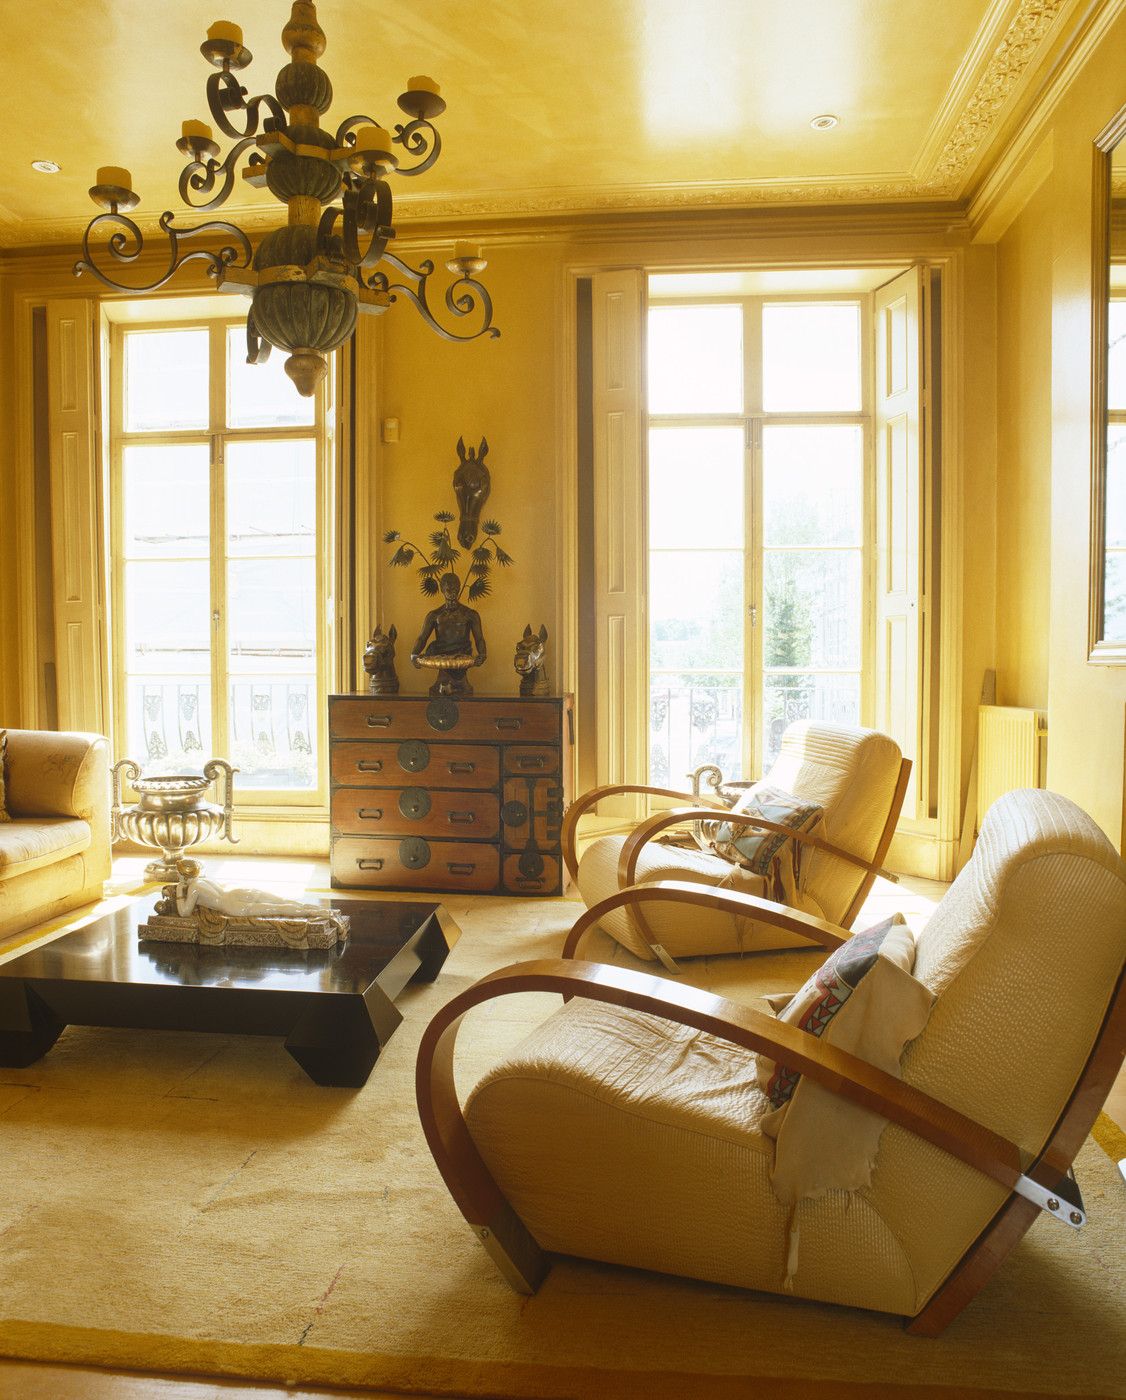 Yellow walls cream rug photos design ideas remodel and decor lonny - Living room with cream walls ...